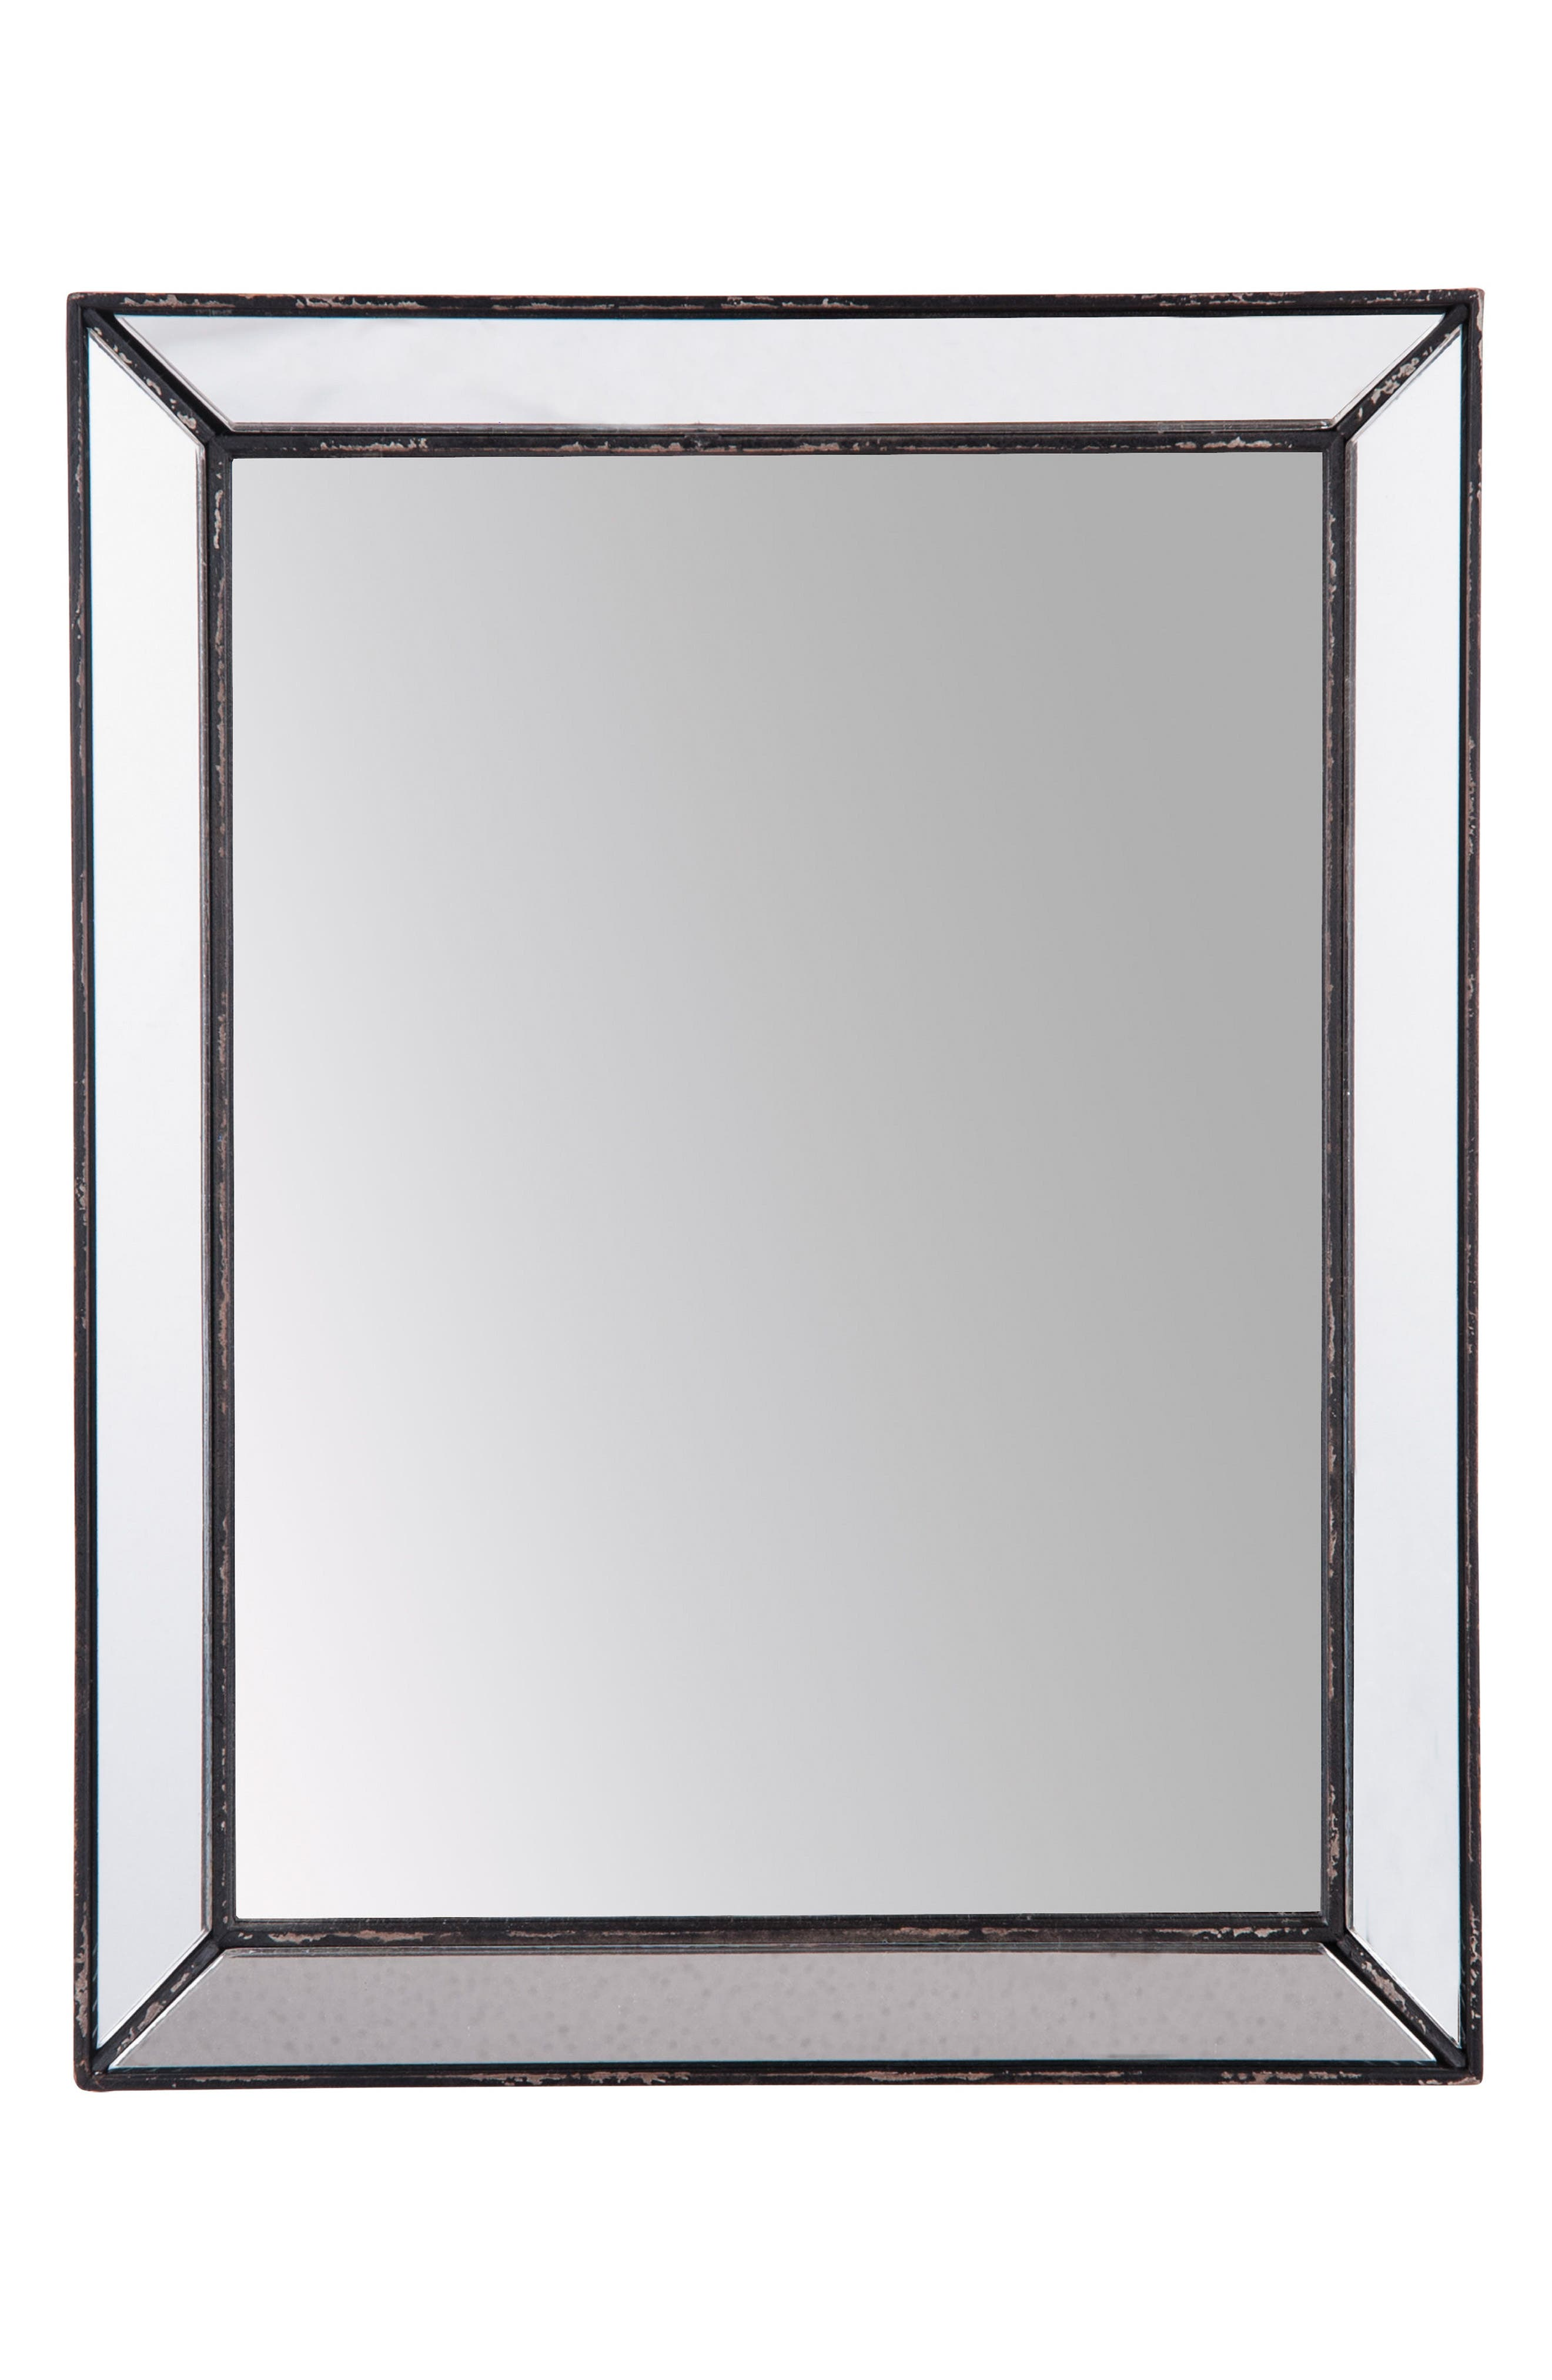 FORESIDE,                             Rectangle Mirror,                             Main thumbnail 1, color,                             040